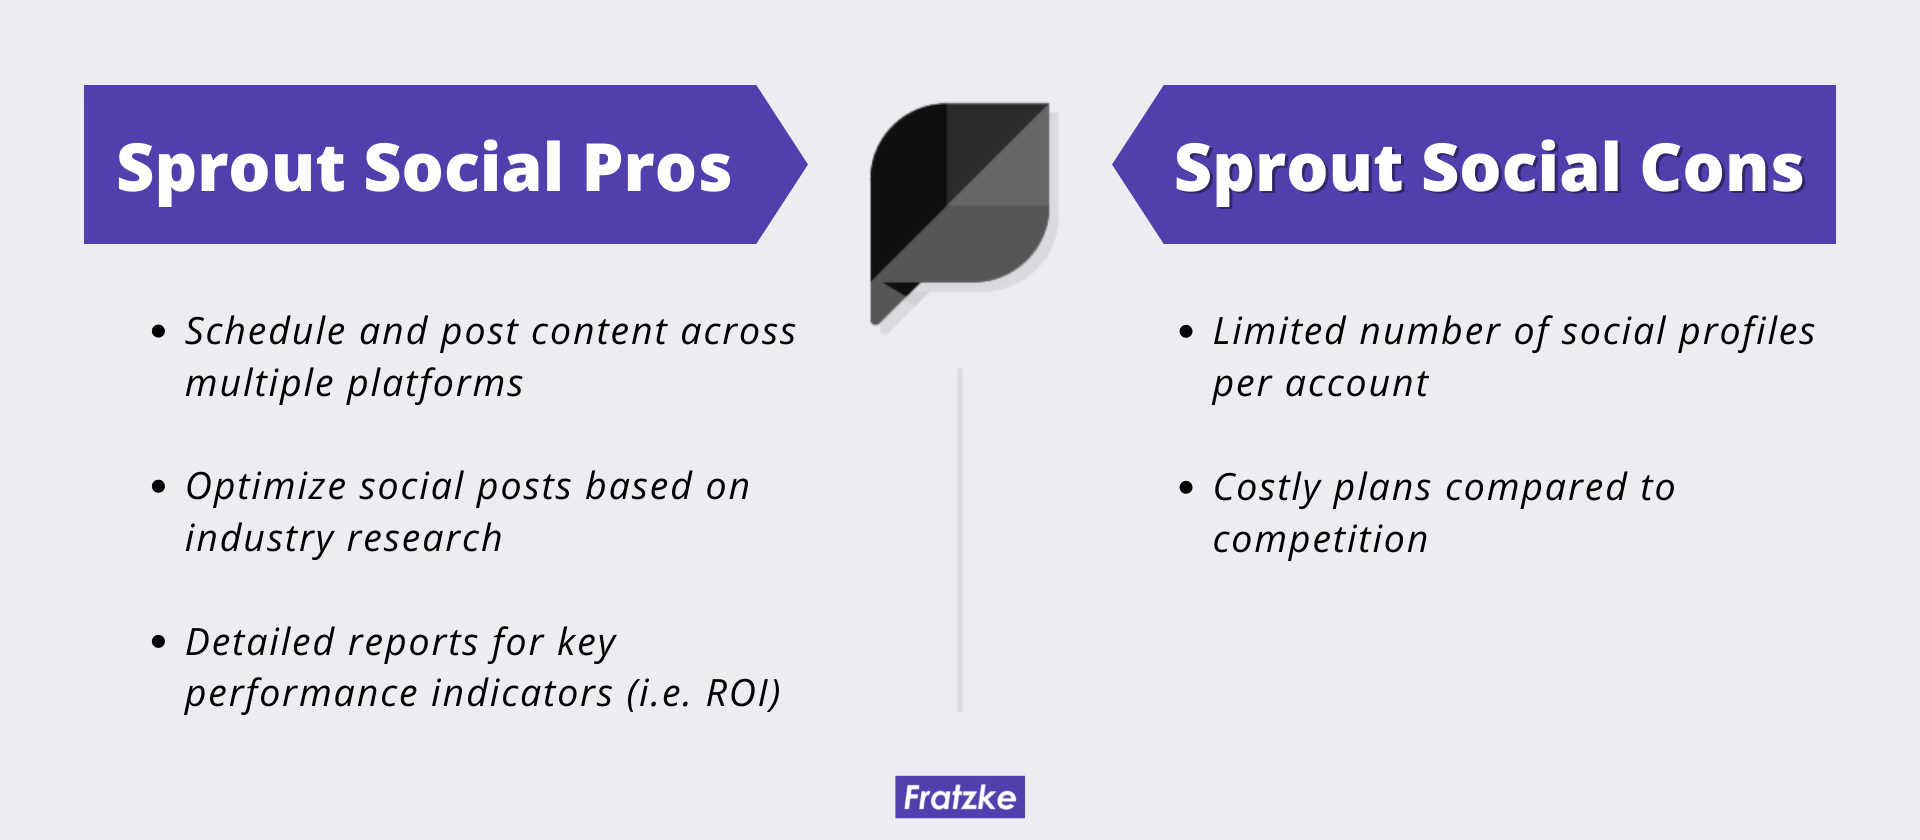 Sprout Social Pros and Cons